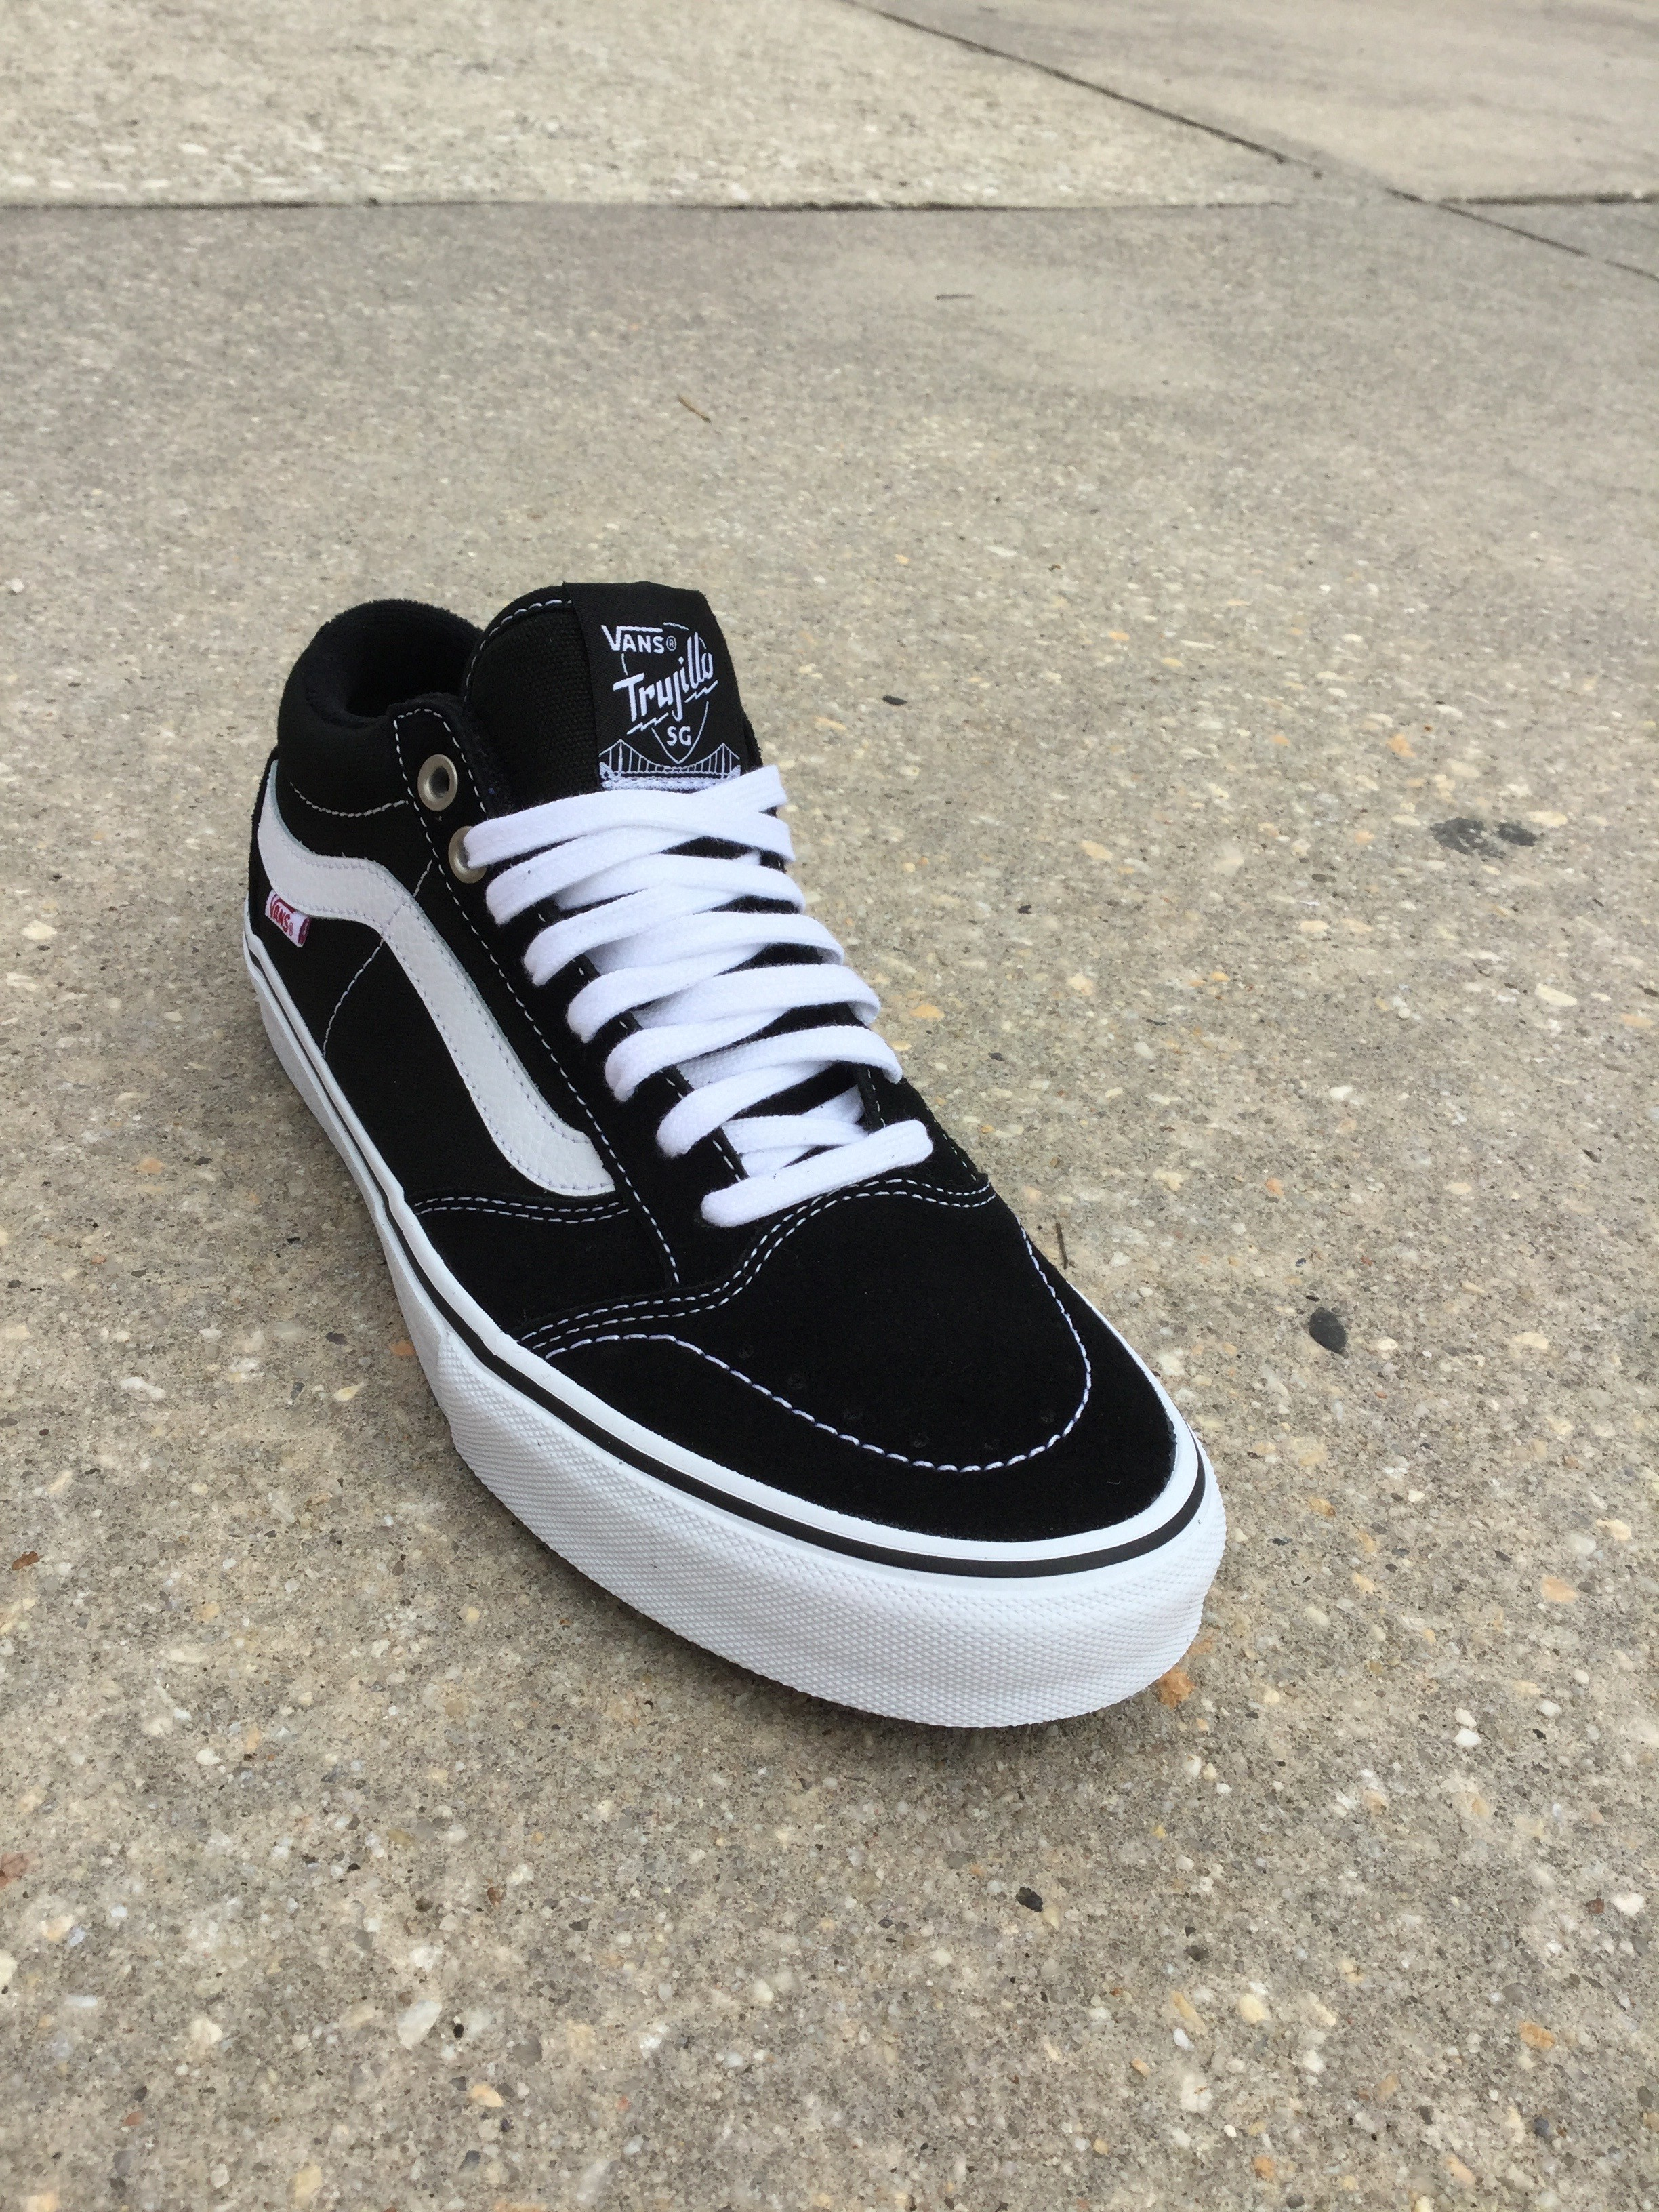 6e5d924ebf4047 New Vans TNT SG In Black White Suede Just Came In At Our Parkville Location.